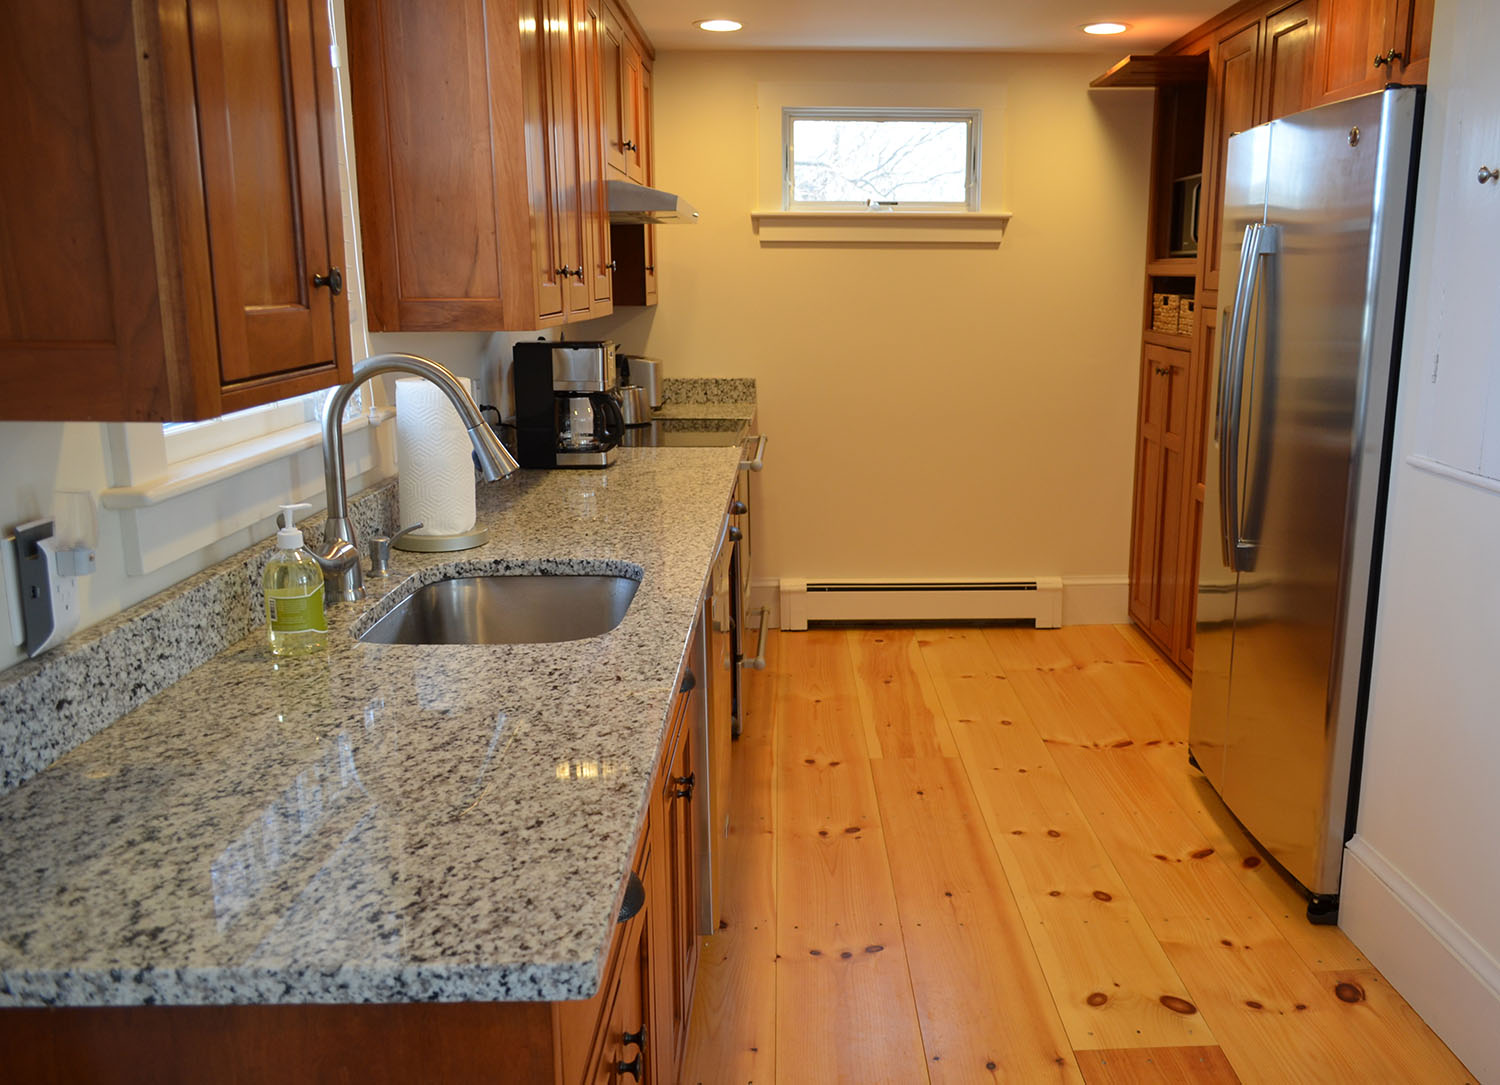 Views on high rockport ma vacation rentals for Updated galley kitchen photos